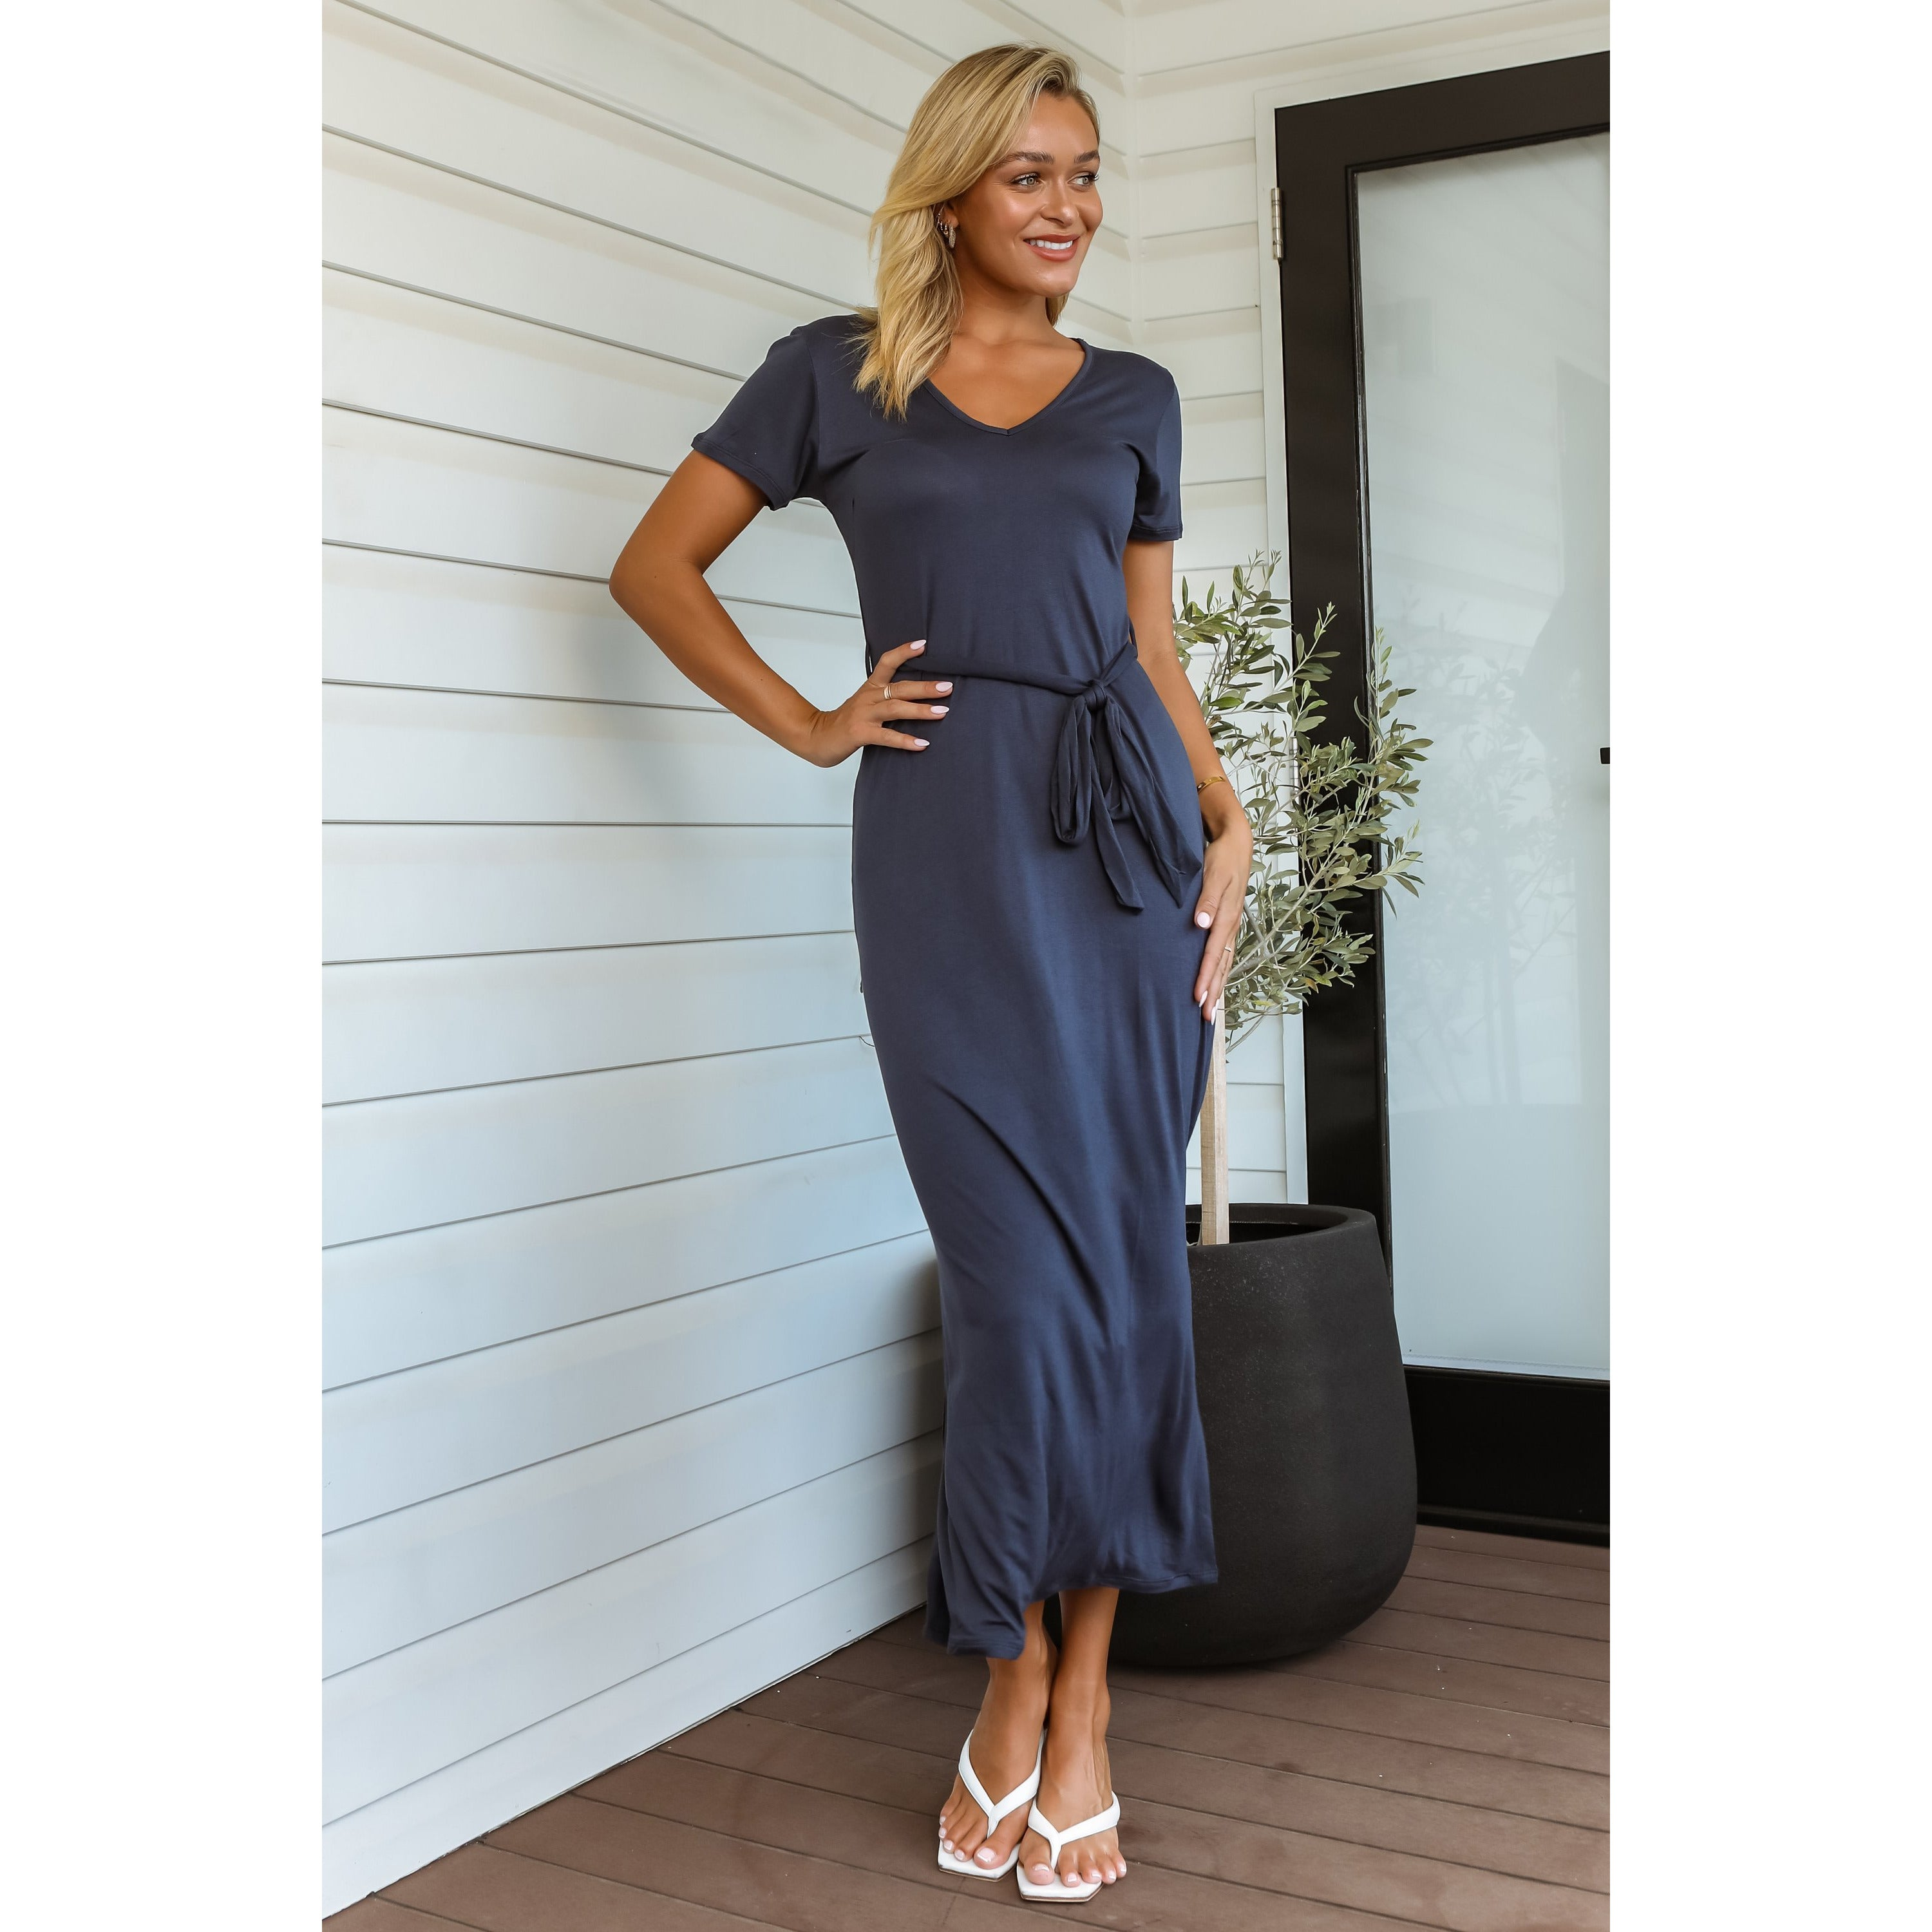 Jessy Bamboo Midi Dress - Navy